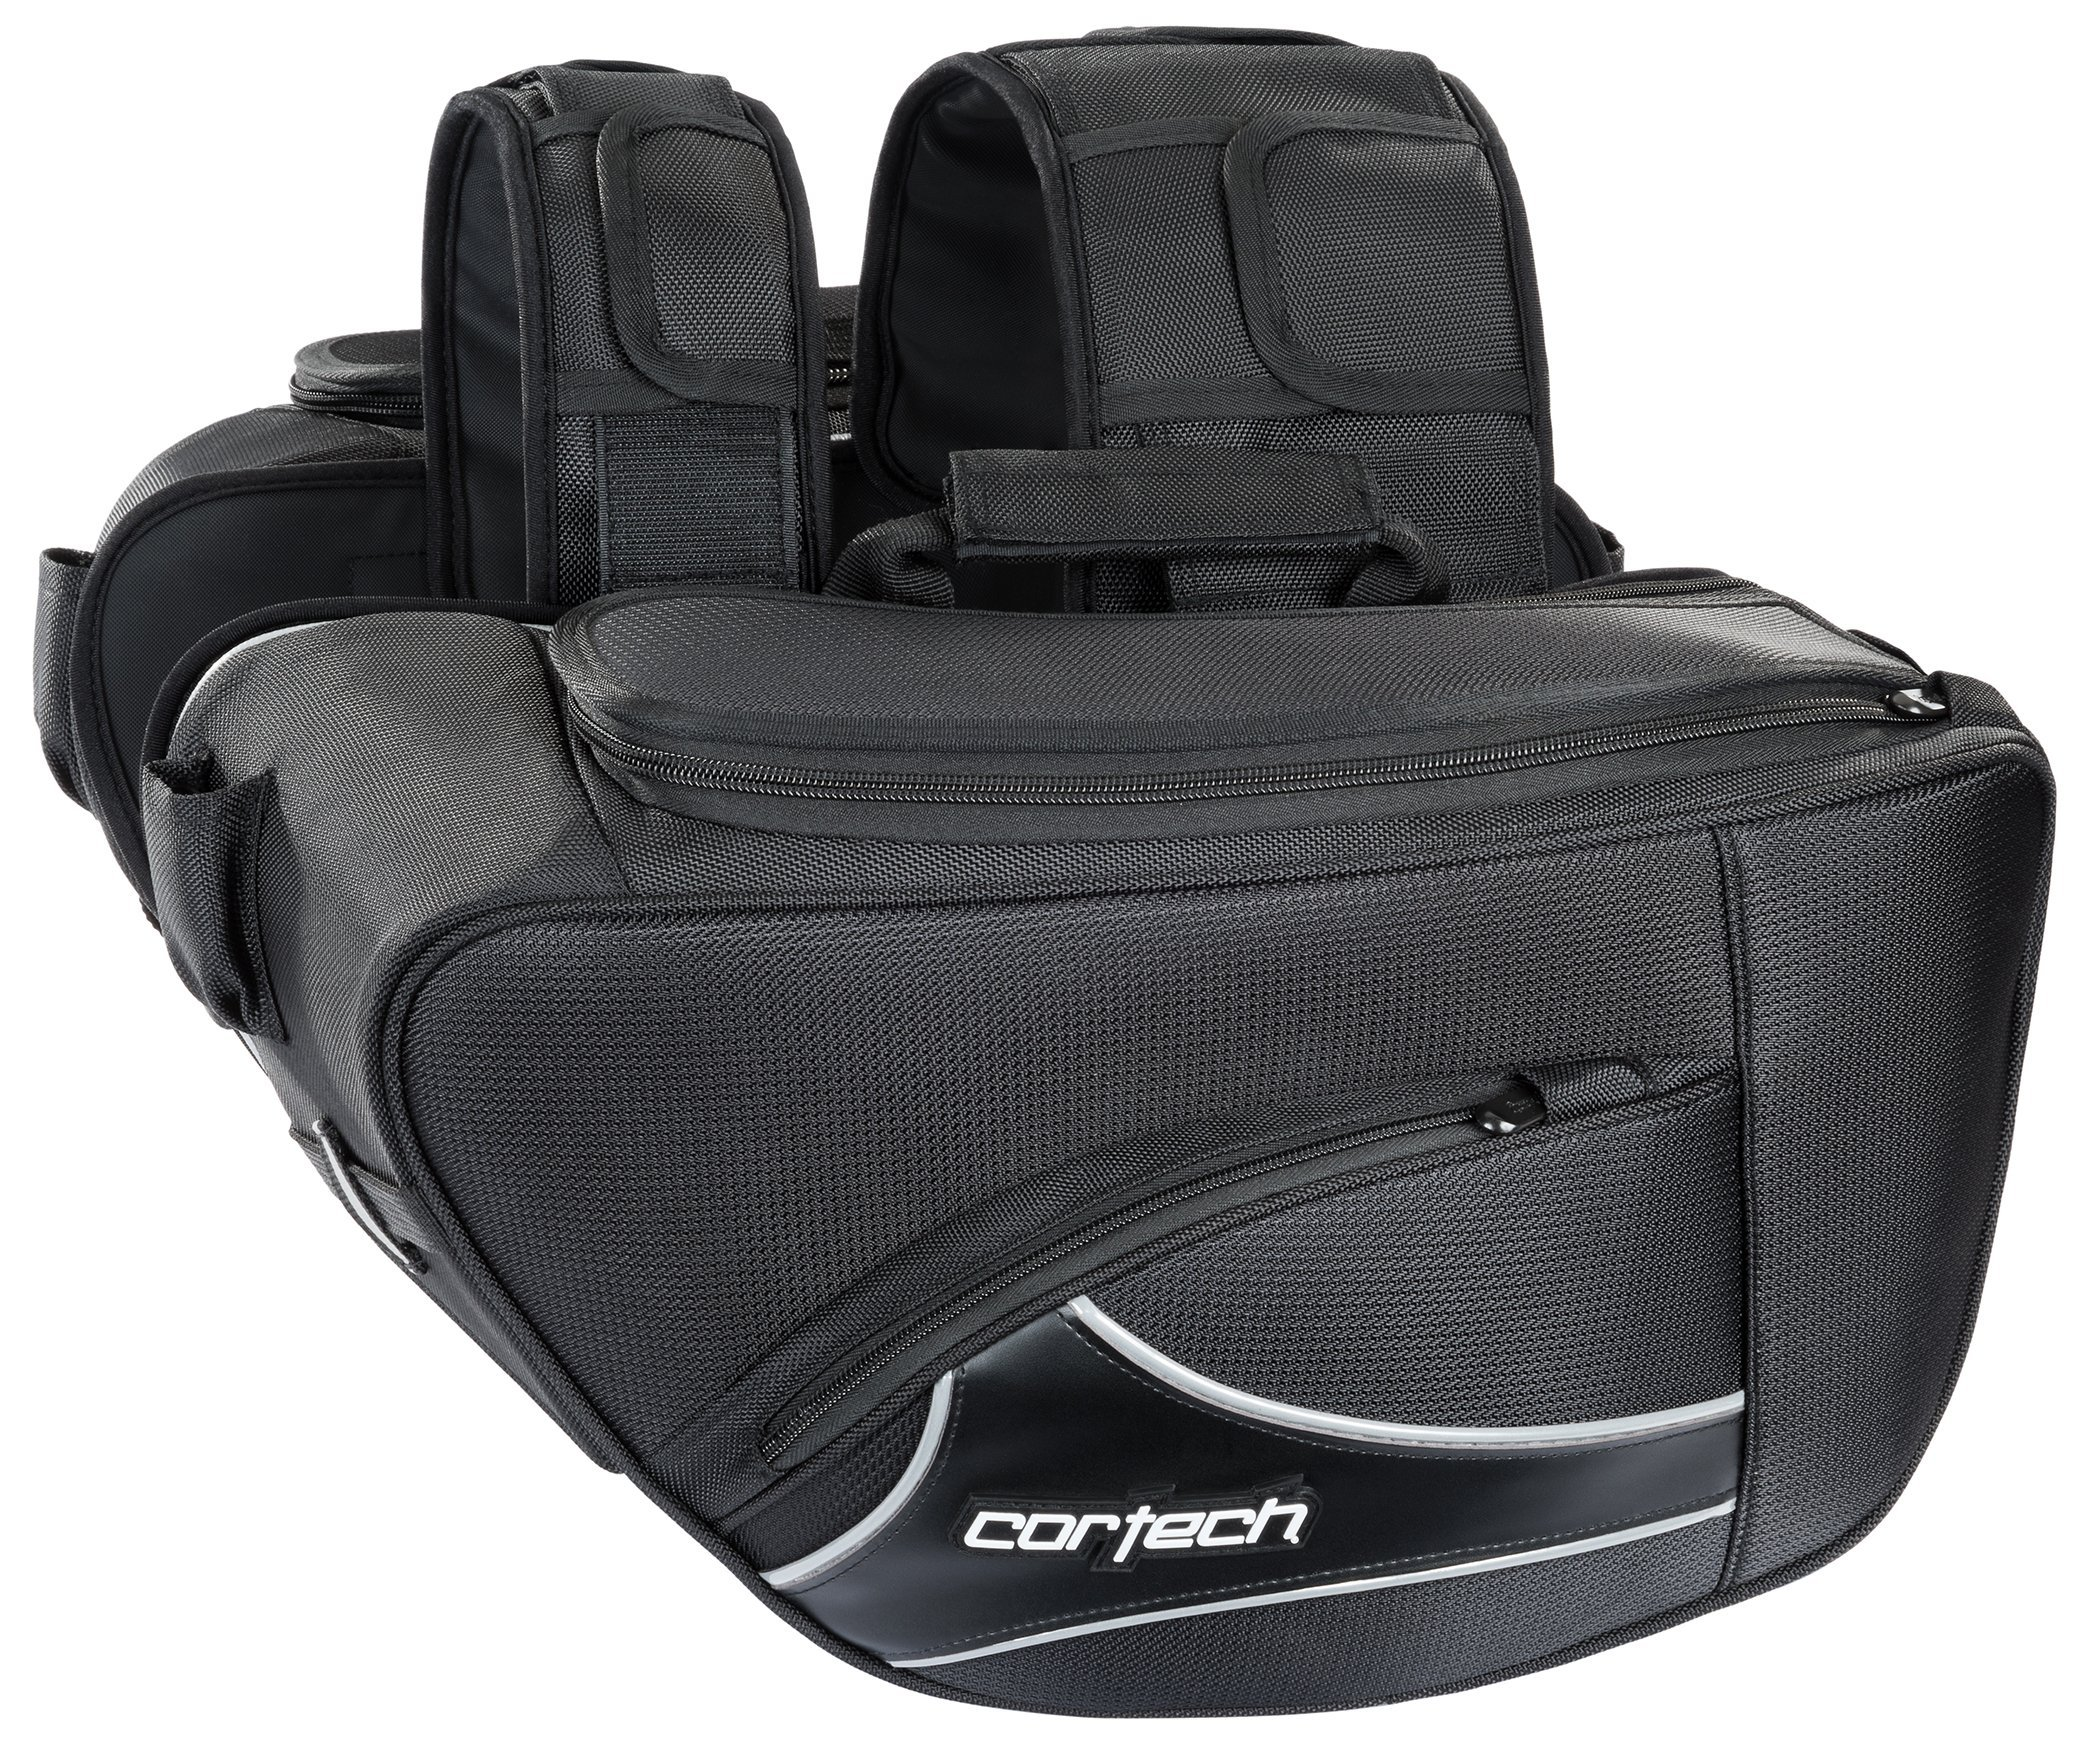 Cortech Super 2.0 Contoured Motorcycle Saddlebags Black 17''L x 5''W x 10''D